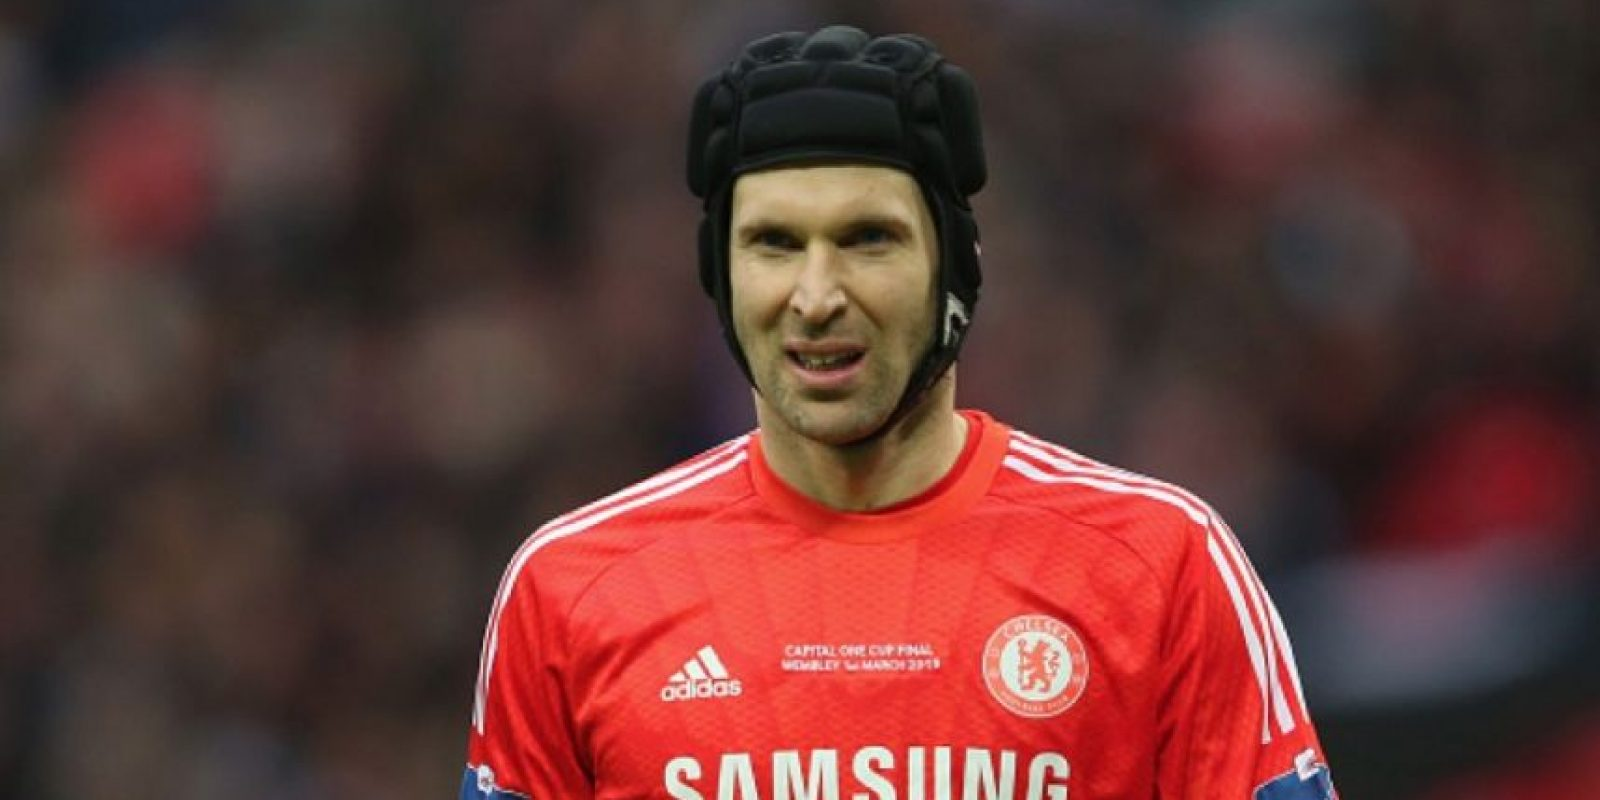 Petr Čech (República Checa) en la vida real. Foto: Getty Images